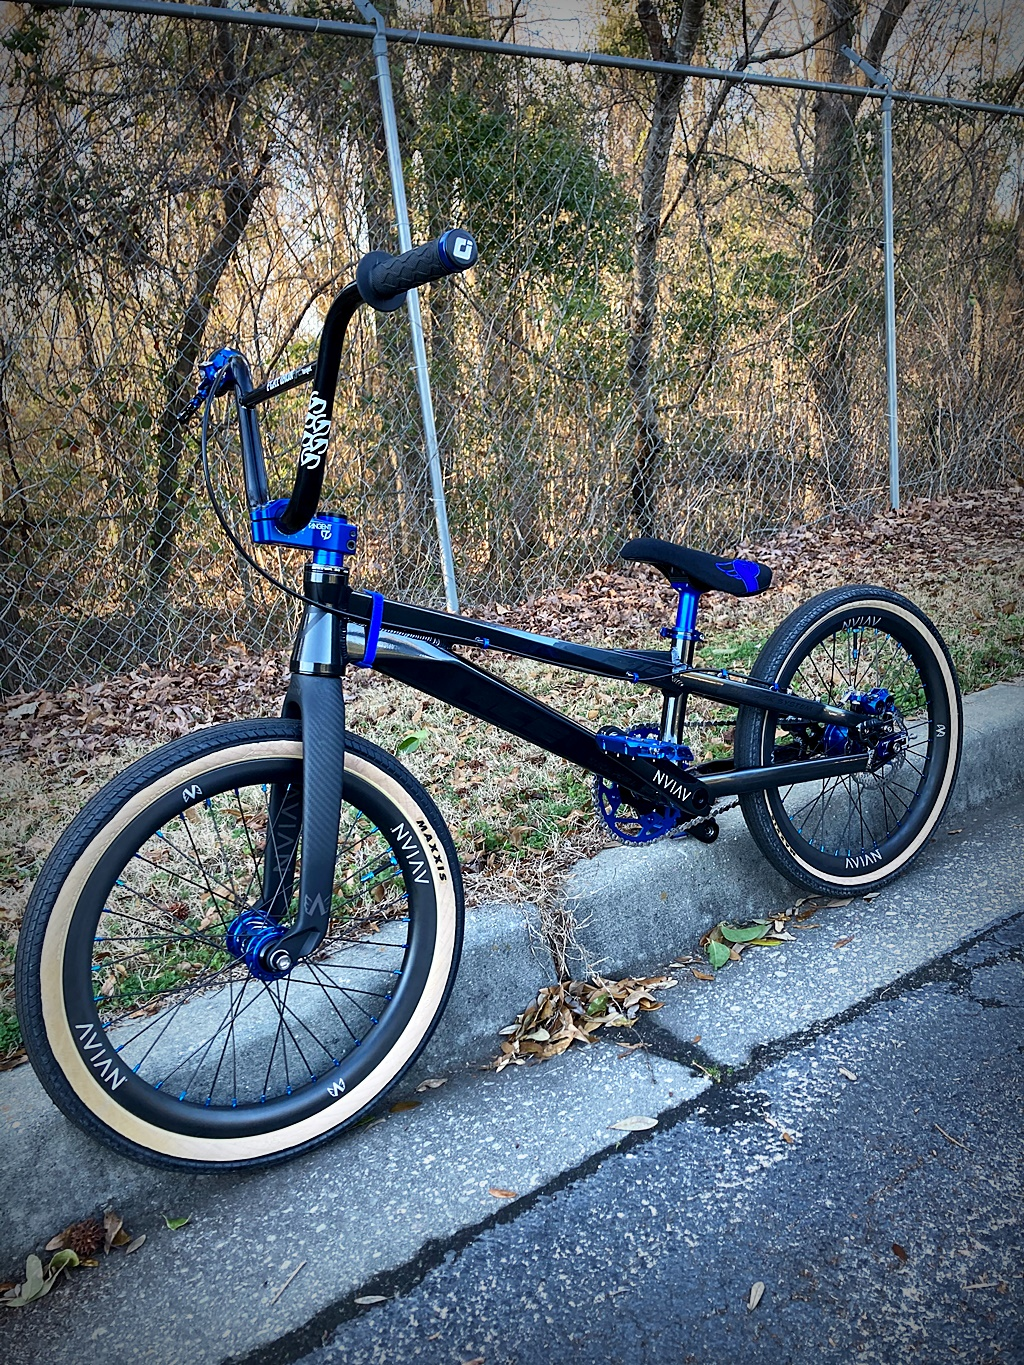 ICE f-118 bmx race bike